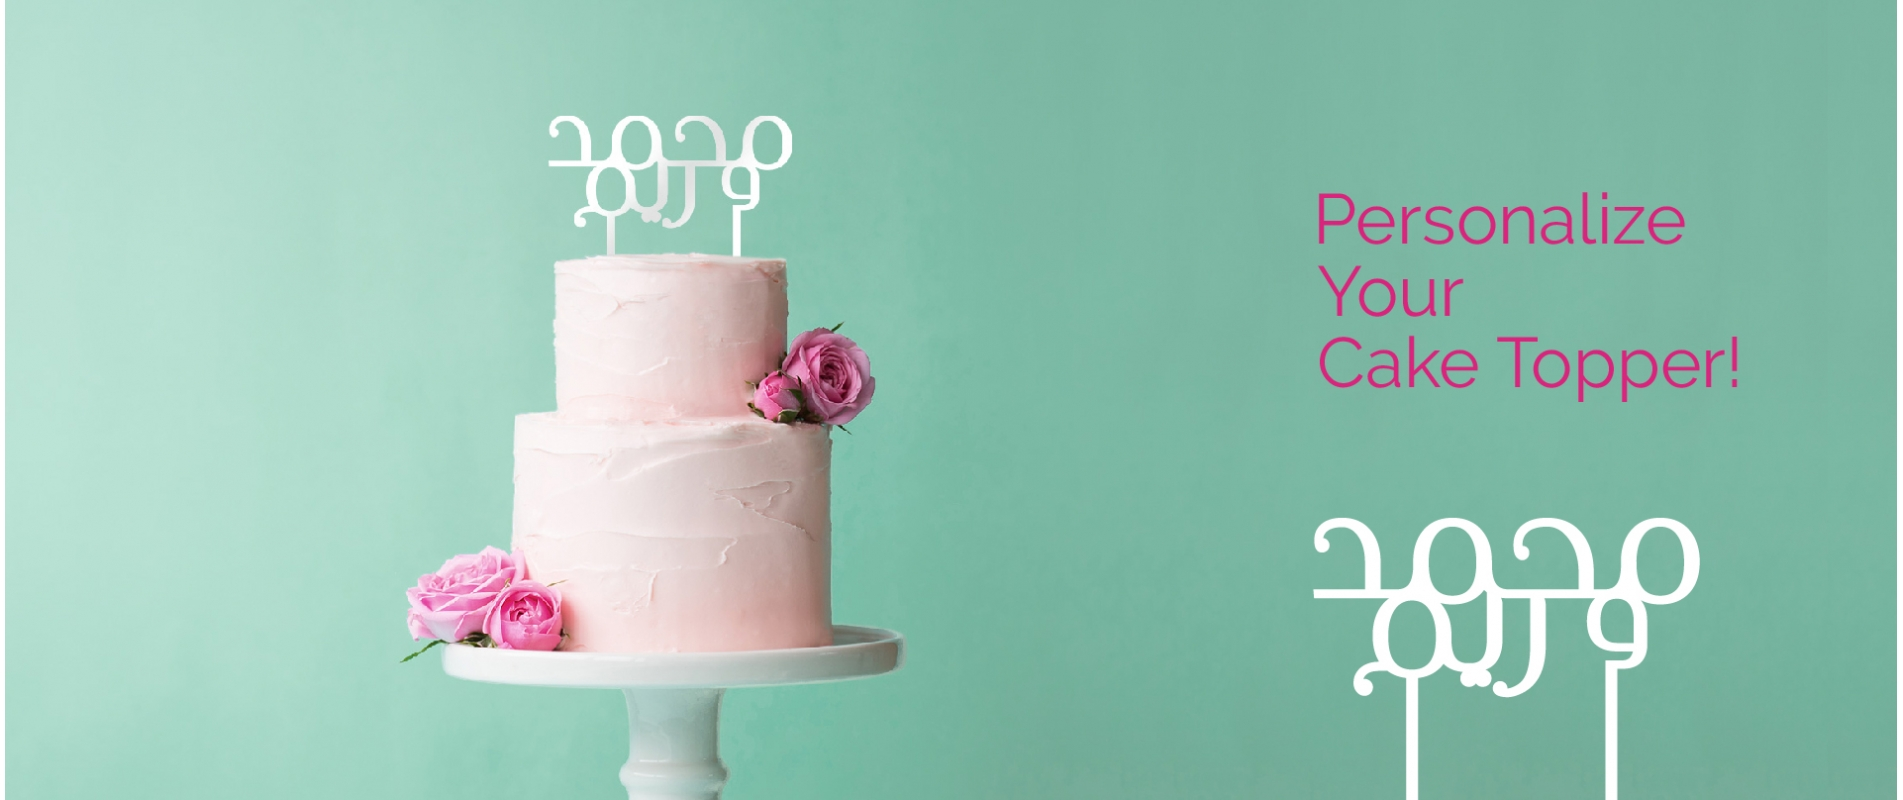 Personalize your cake topper